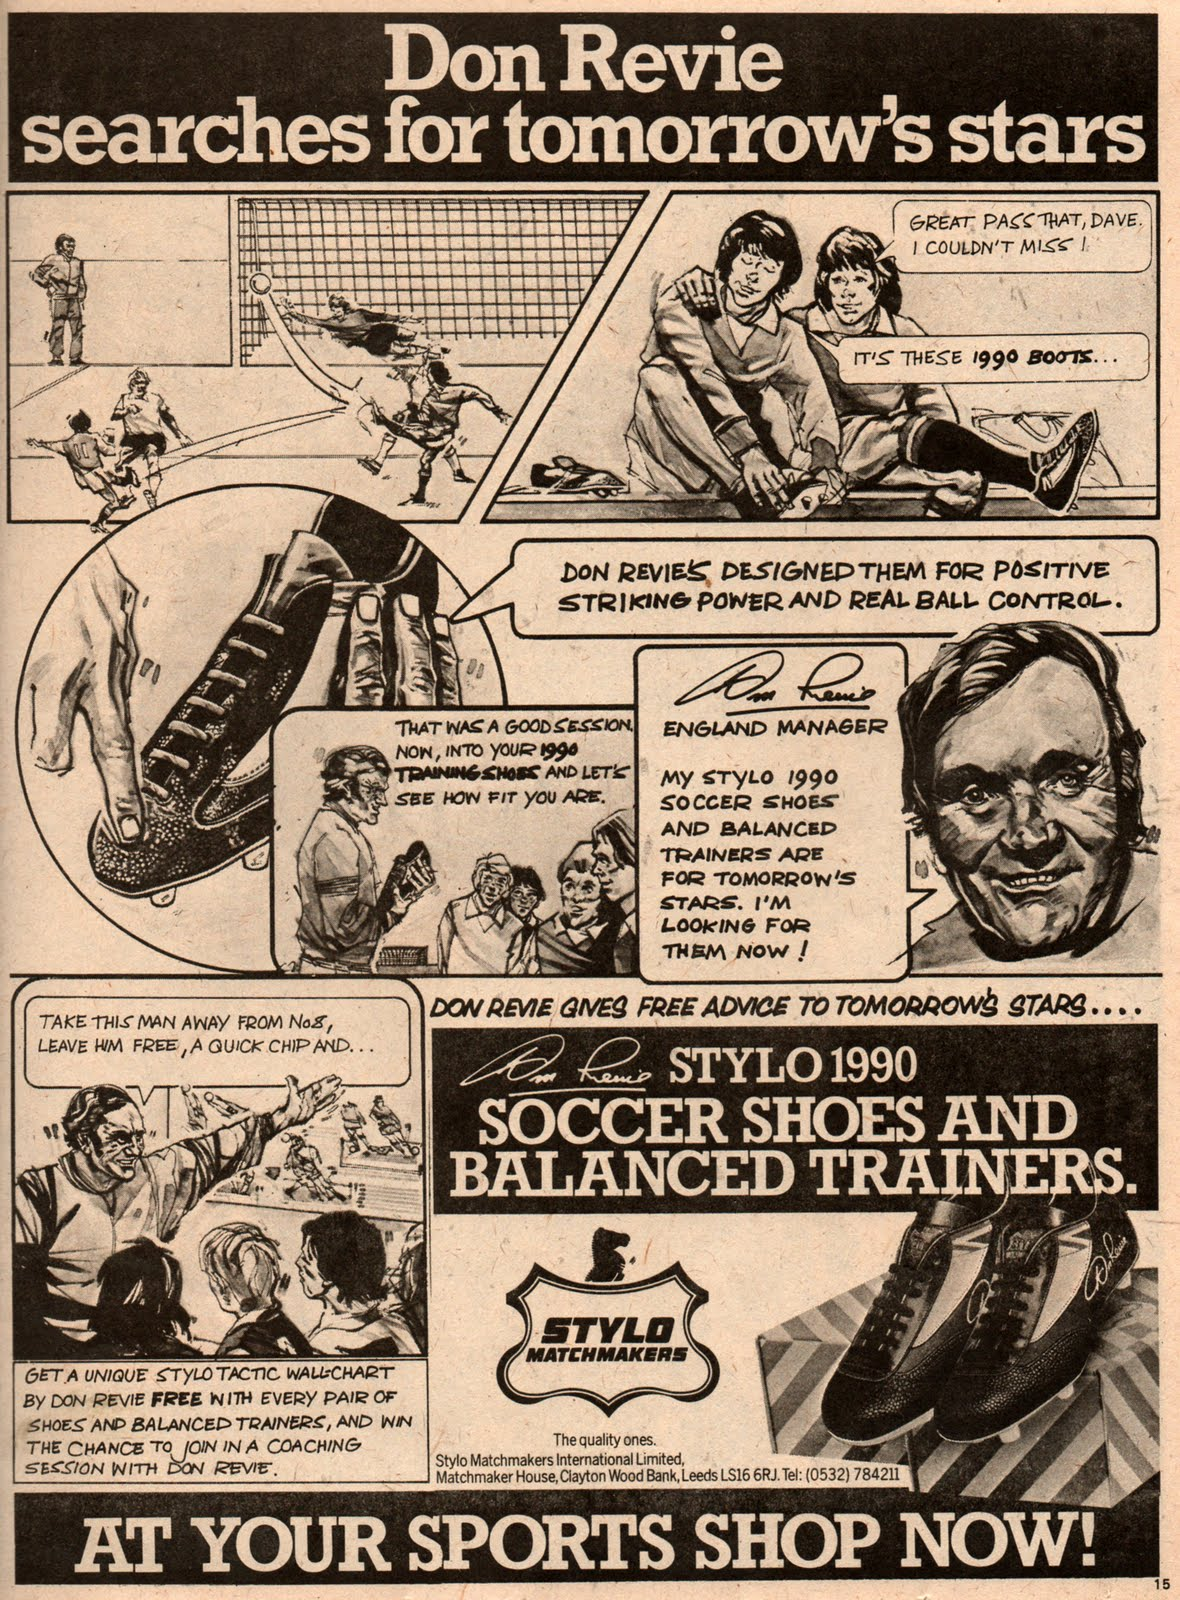 stylo matchmakers don revie